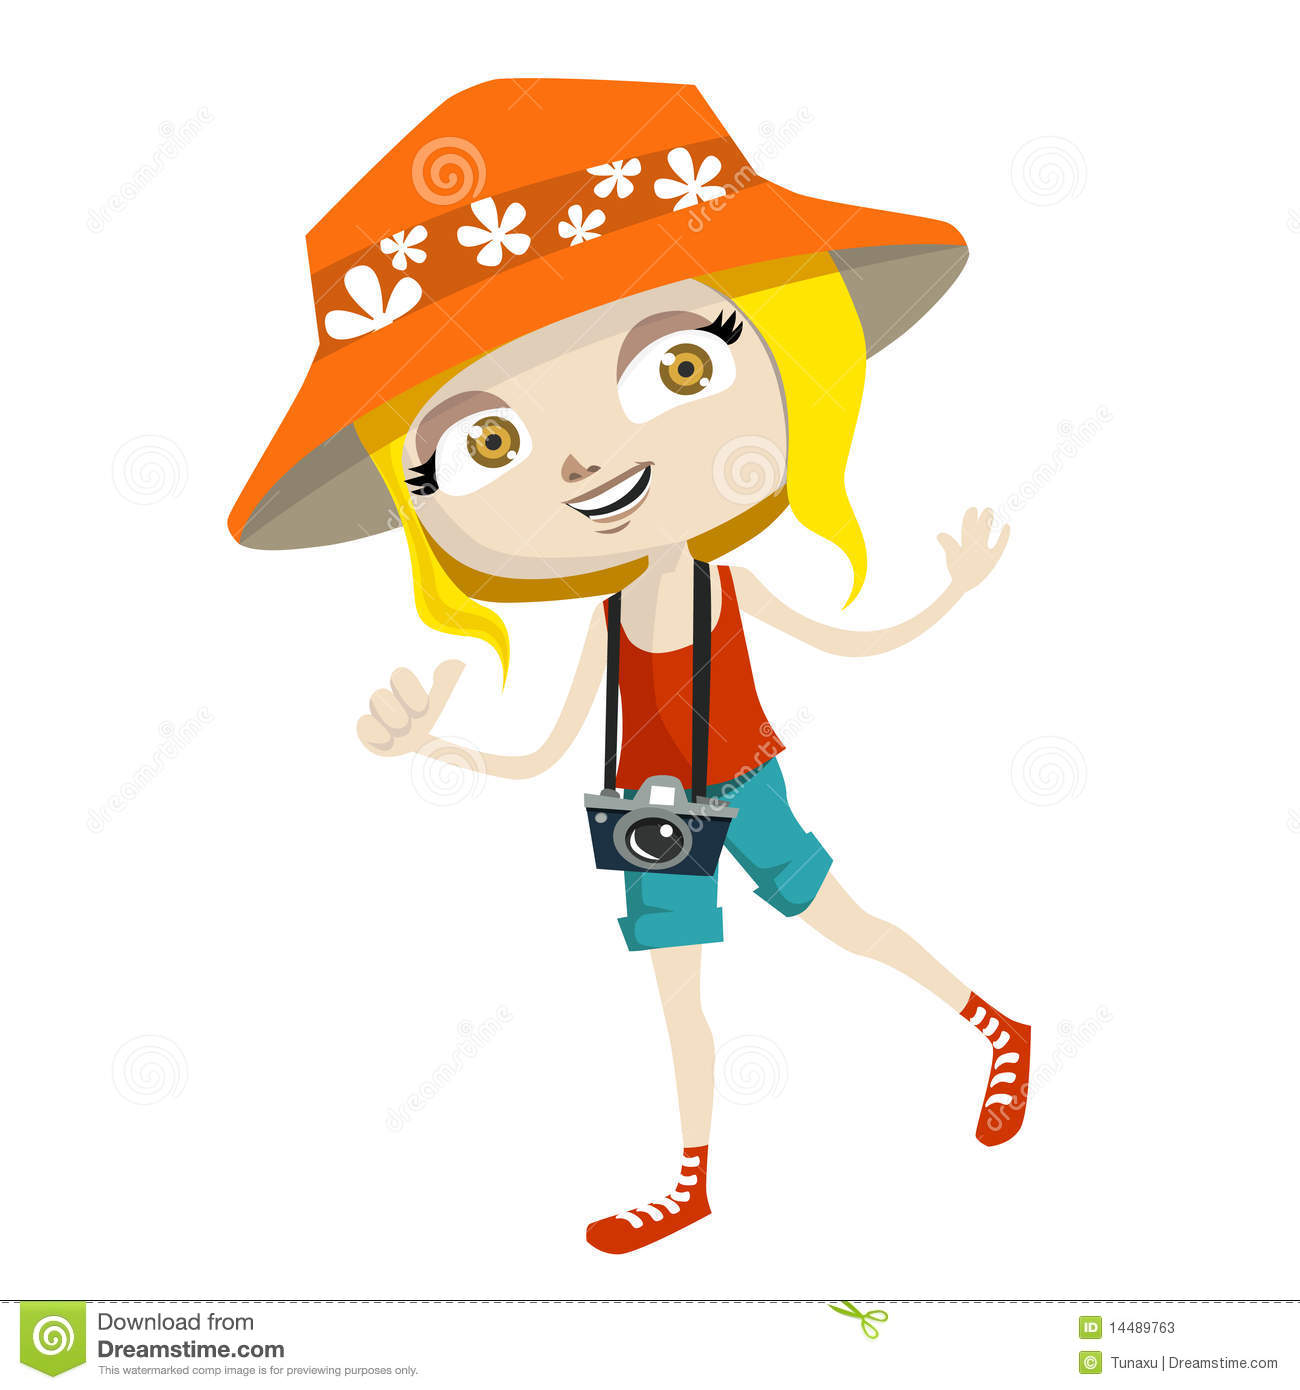 Cartoon style tourist kid illustration vector.